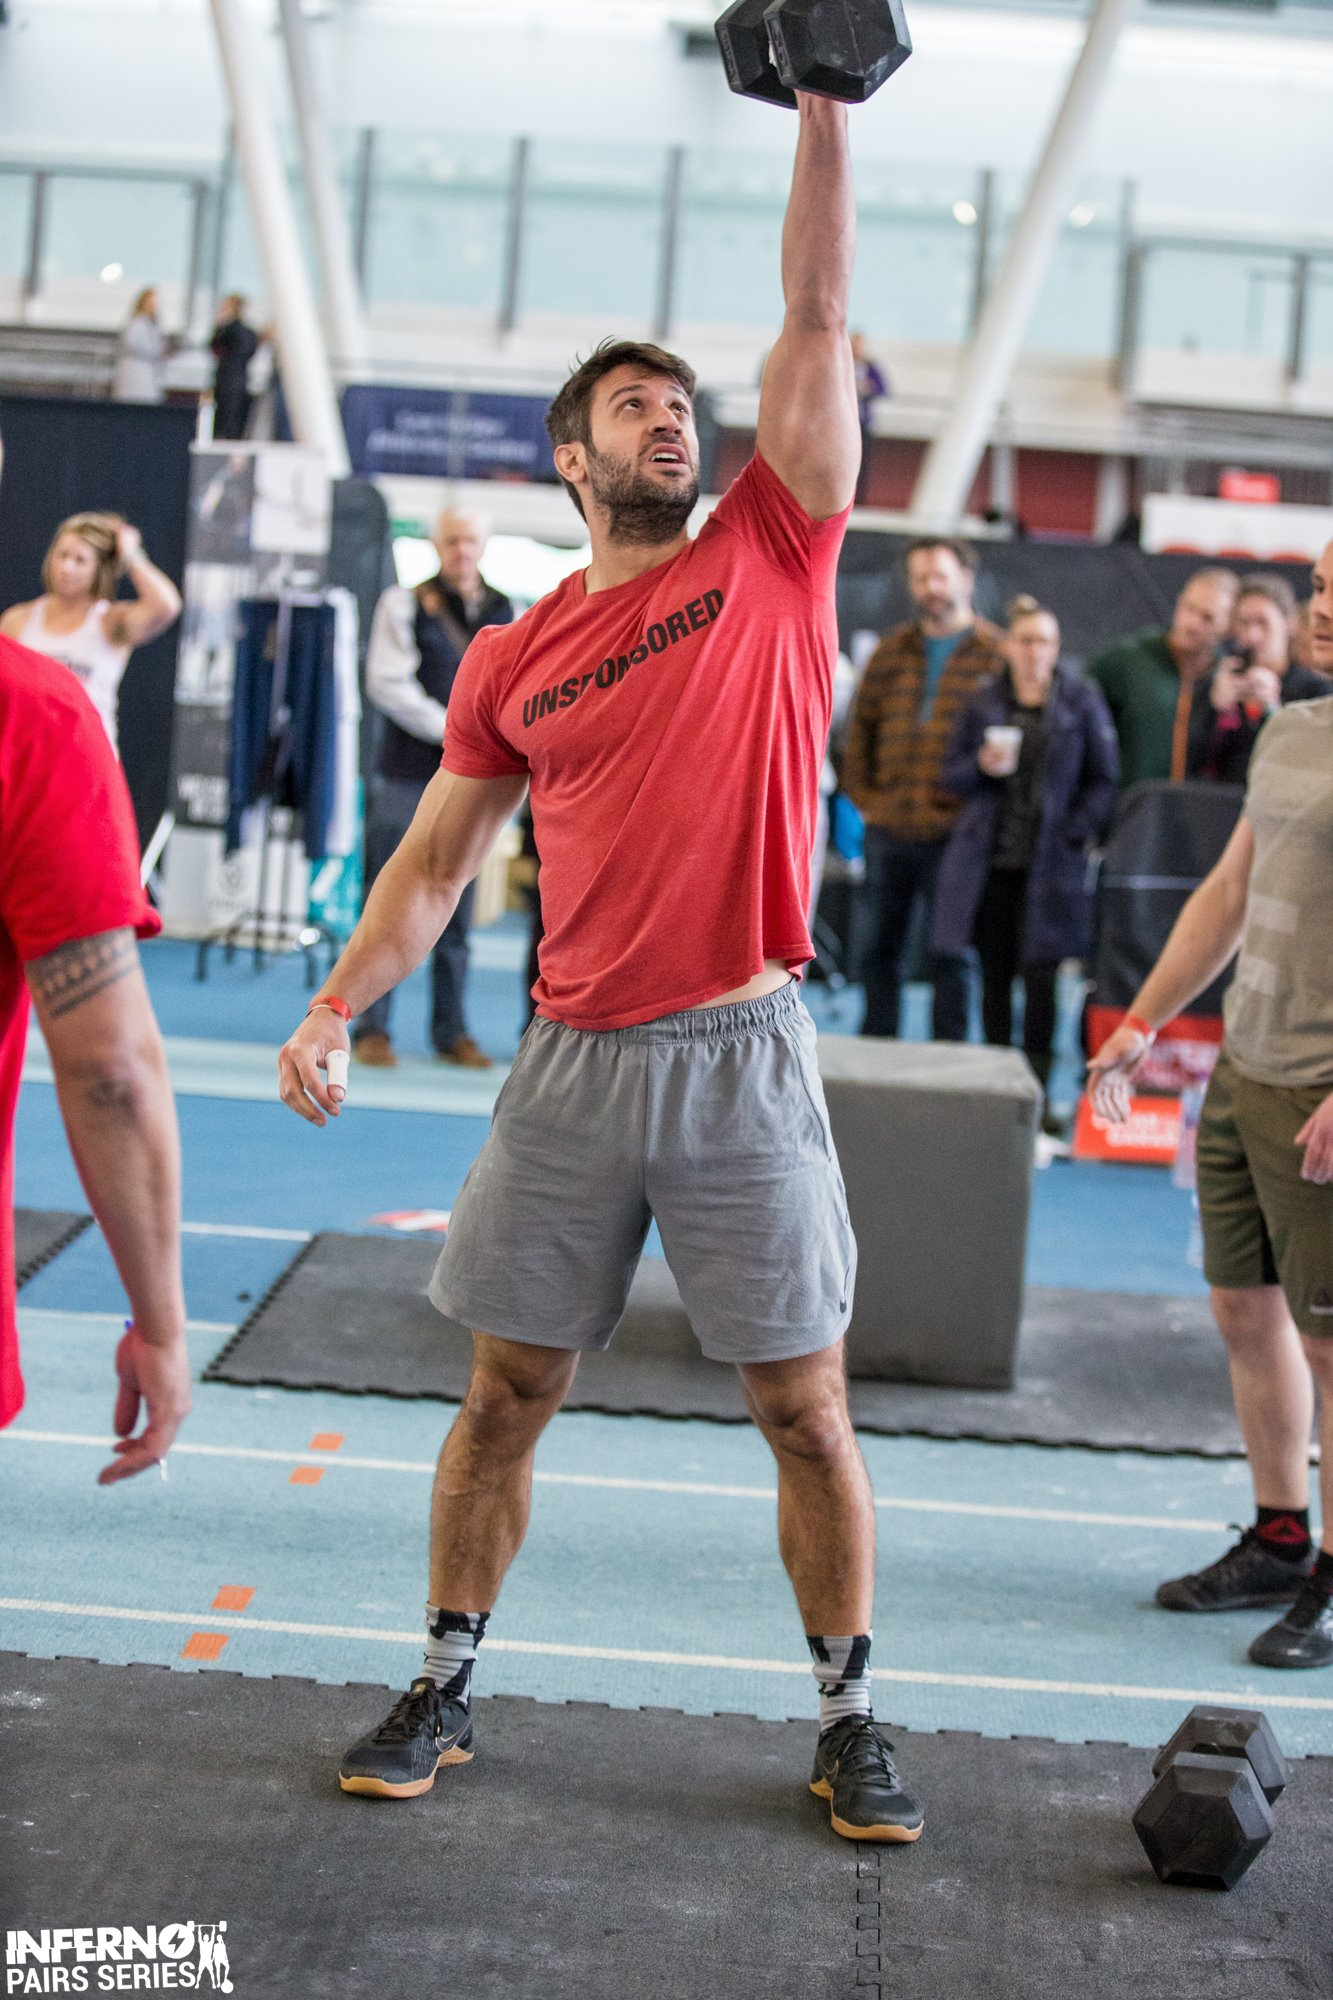 Tom Batchelor - Tom is Lead Sport Scientist and Conditioning coach at Harlequins Rugby Club, where he is responsible for the fitness and readiness of the first team squad.He has been 'gym' training for 17 years. He first got into lifting weights to support his rugby, but strength training soon over took rugby as his favourite hobby. Straight out of university he worked in banking, but ultimately his love for training turned into a career as he left the city behind him to start a career in Strength and Conditioning. After completing a Masters in Strength and Conditioning he manage to land an internship at Harlequins and ultimately a job there, where he has now been for 7 years. His desire for knowledge has lead him to complete a number of qualifications, and he is currently studying for a Professional Doctorate on the subject of periodisation.His Crossfit journey started 5 years ago, when he wanted to find something he could compete in whilst juggling his commitments with Harlequins. He has been training competitive Crossfitters for the past couple of years to a wide range of levels.